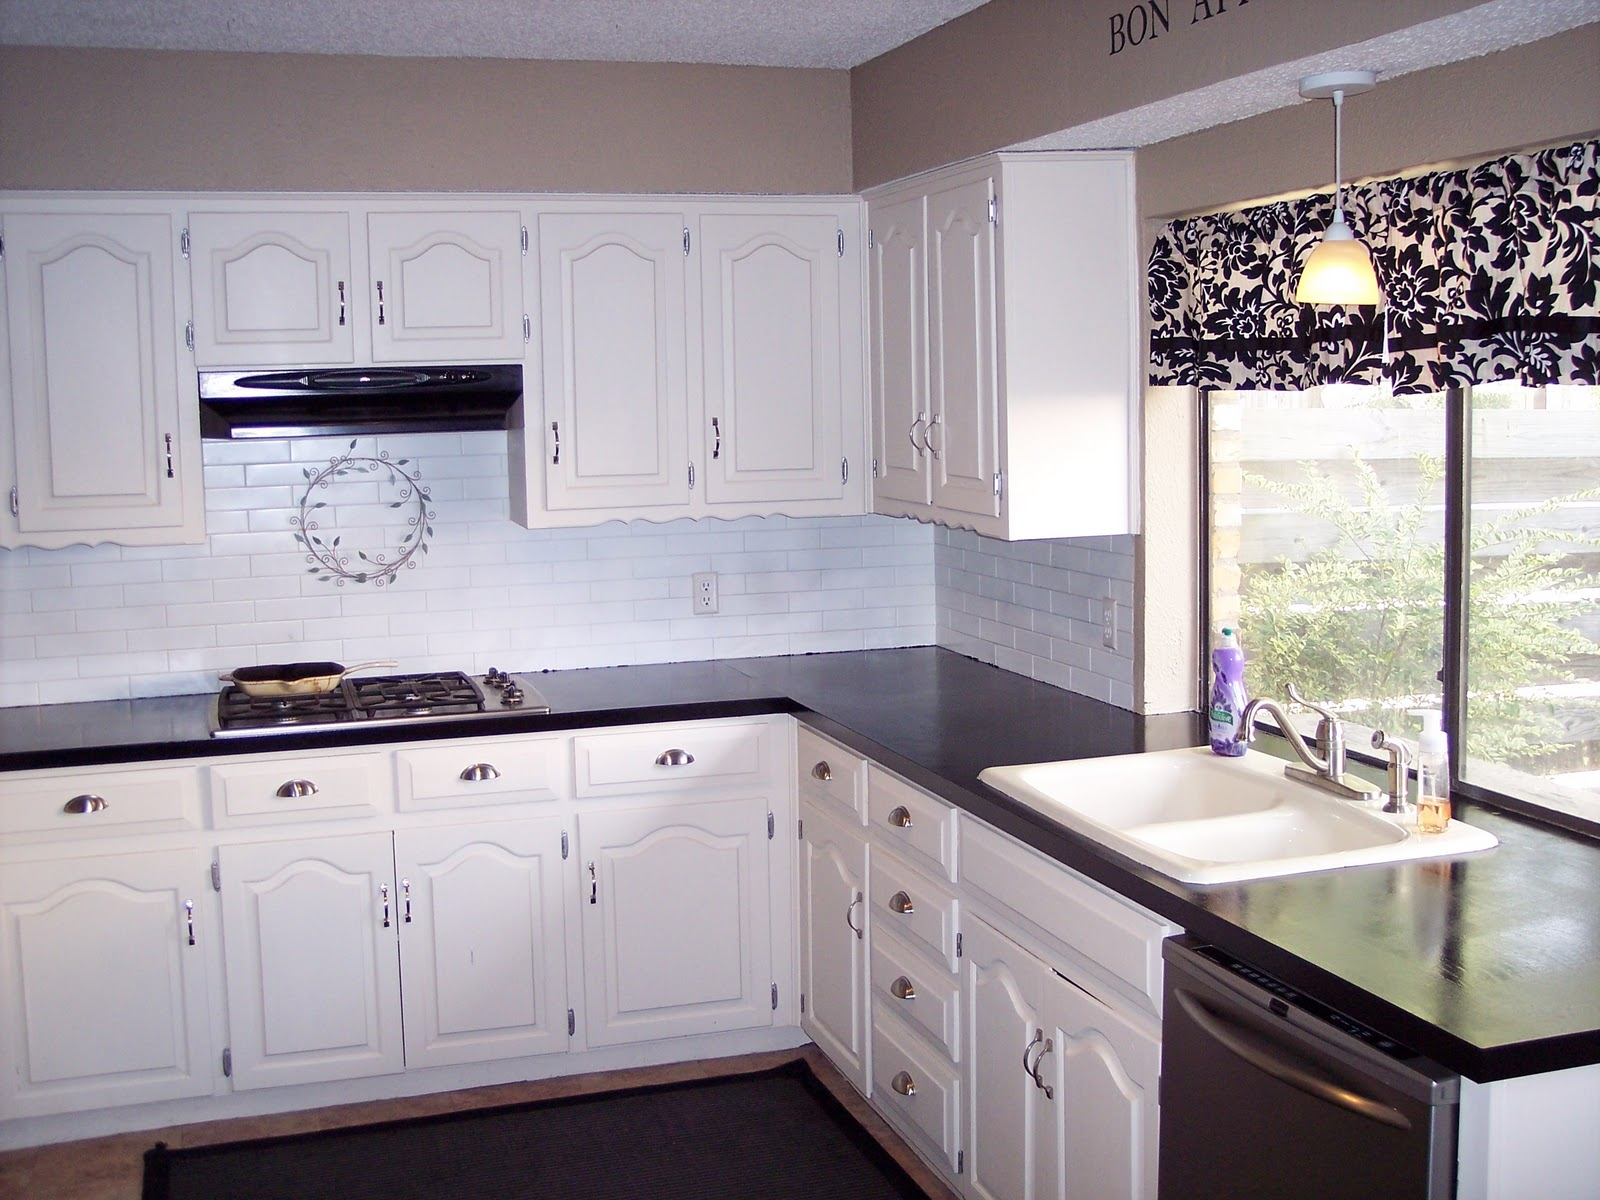 Countertop Paint Black : It had so much sheen you could see yourself in them. It brought me ...